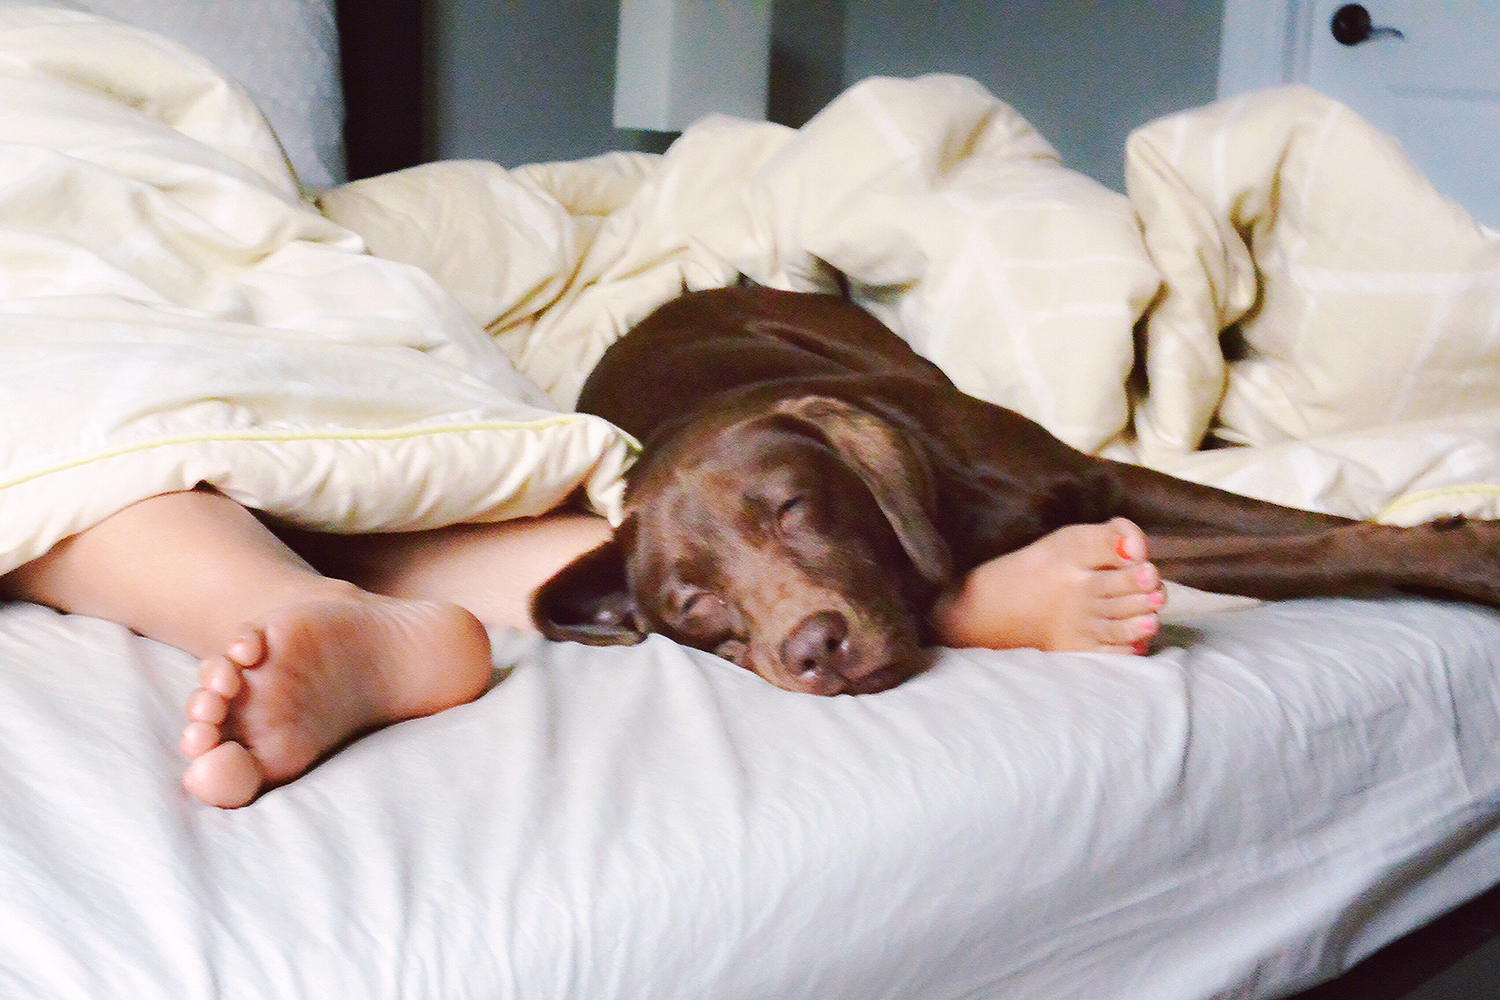 Nearly 75% of Dog Owners Let Pets Sleep on Bed | PEOPLE.com